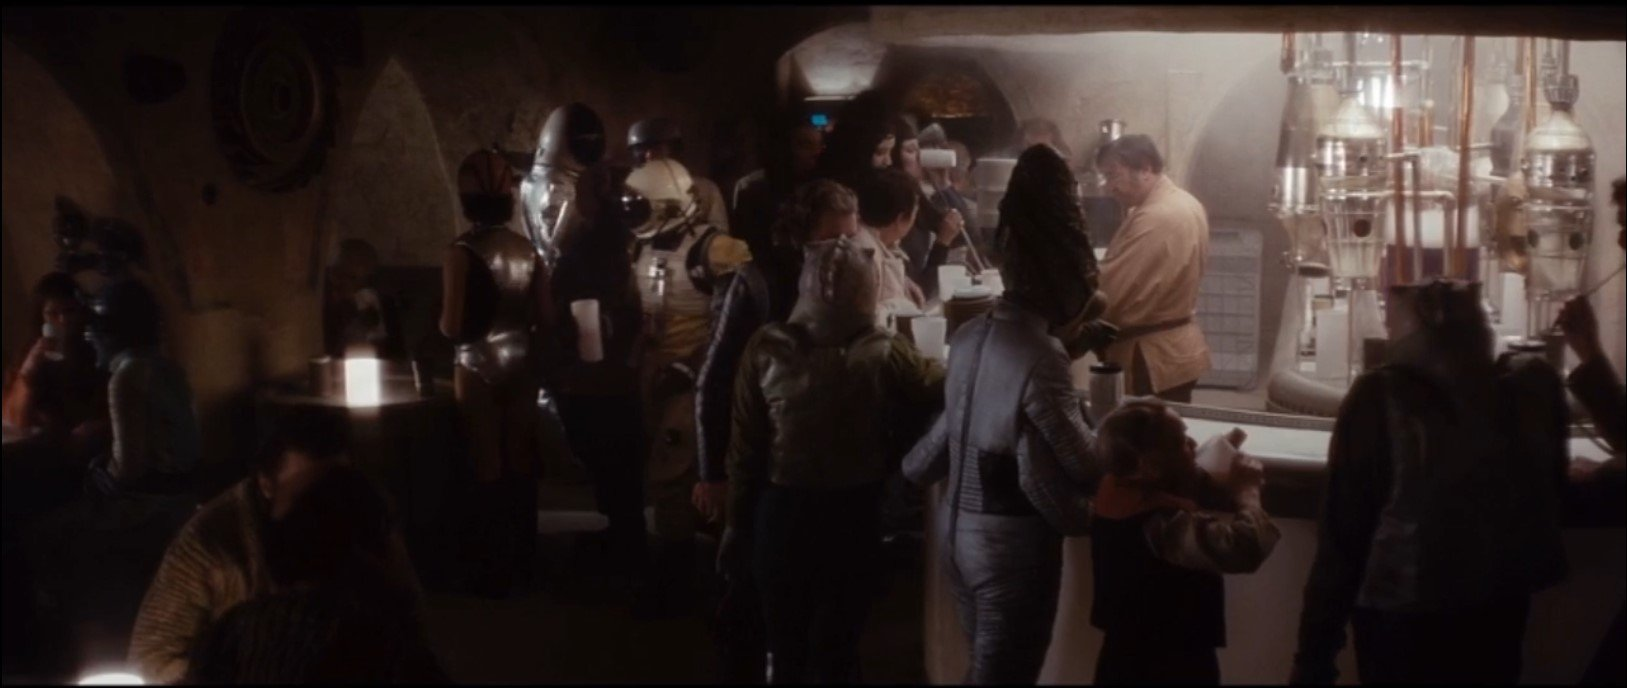 Star Wars A New Hope Cantina Scene. Bossk suit prop and IG-88 head prop